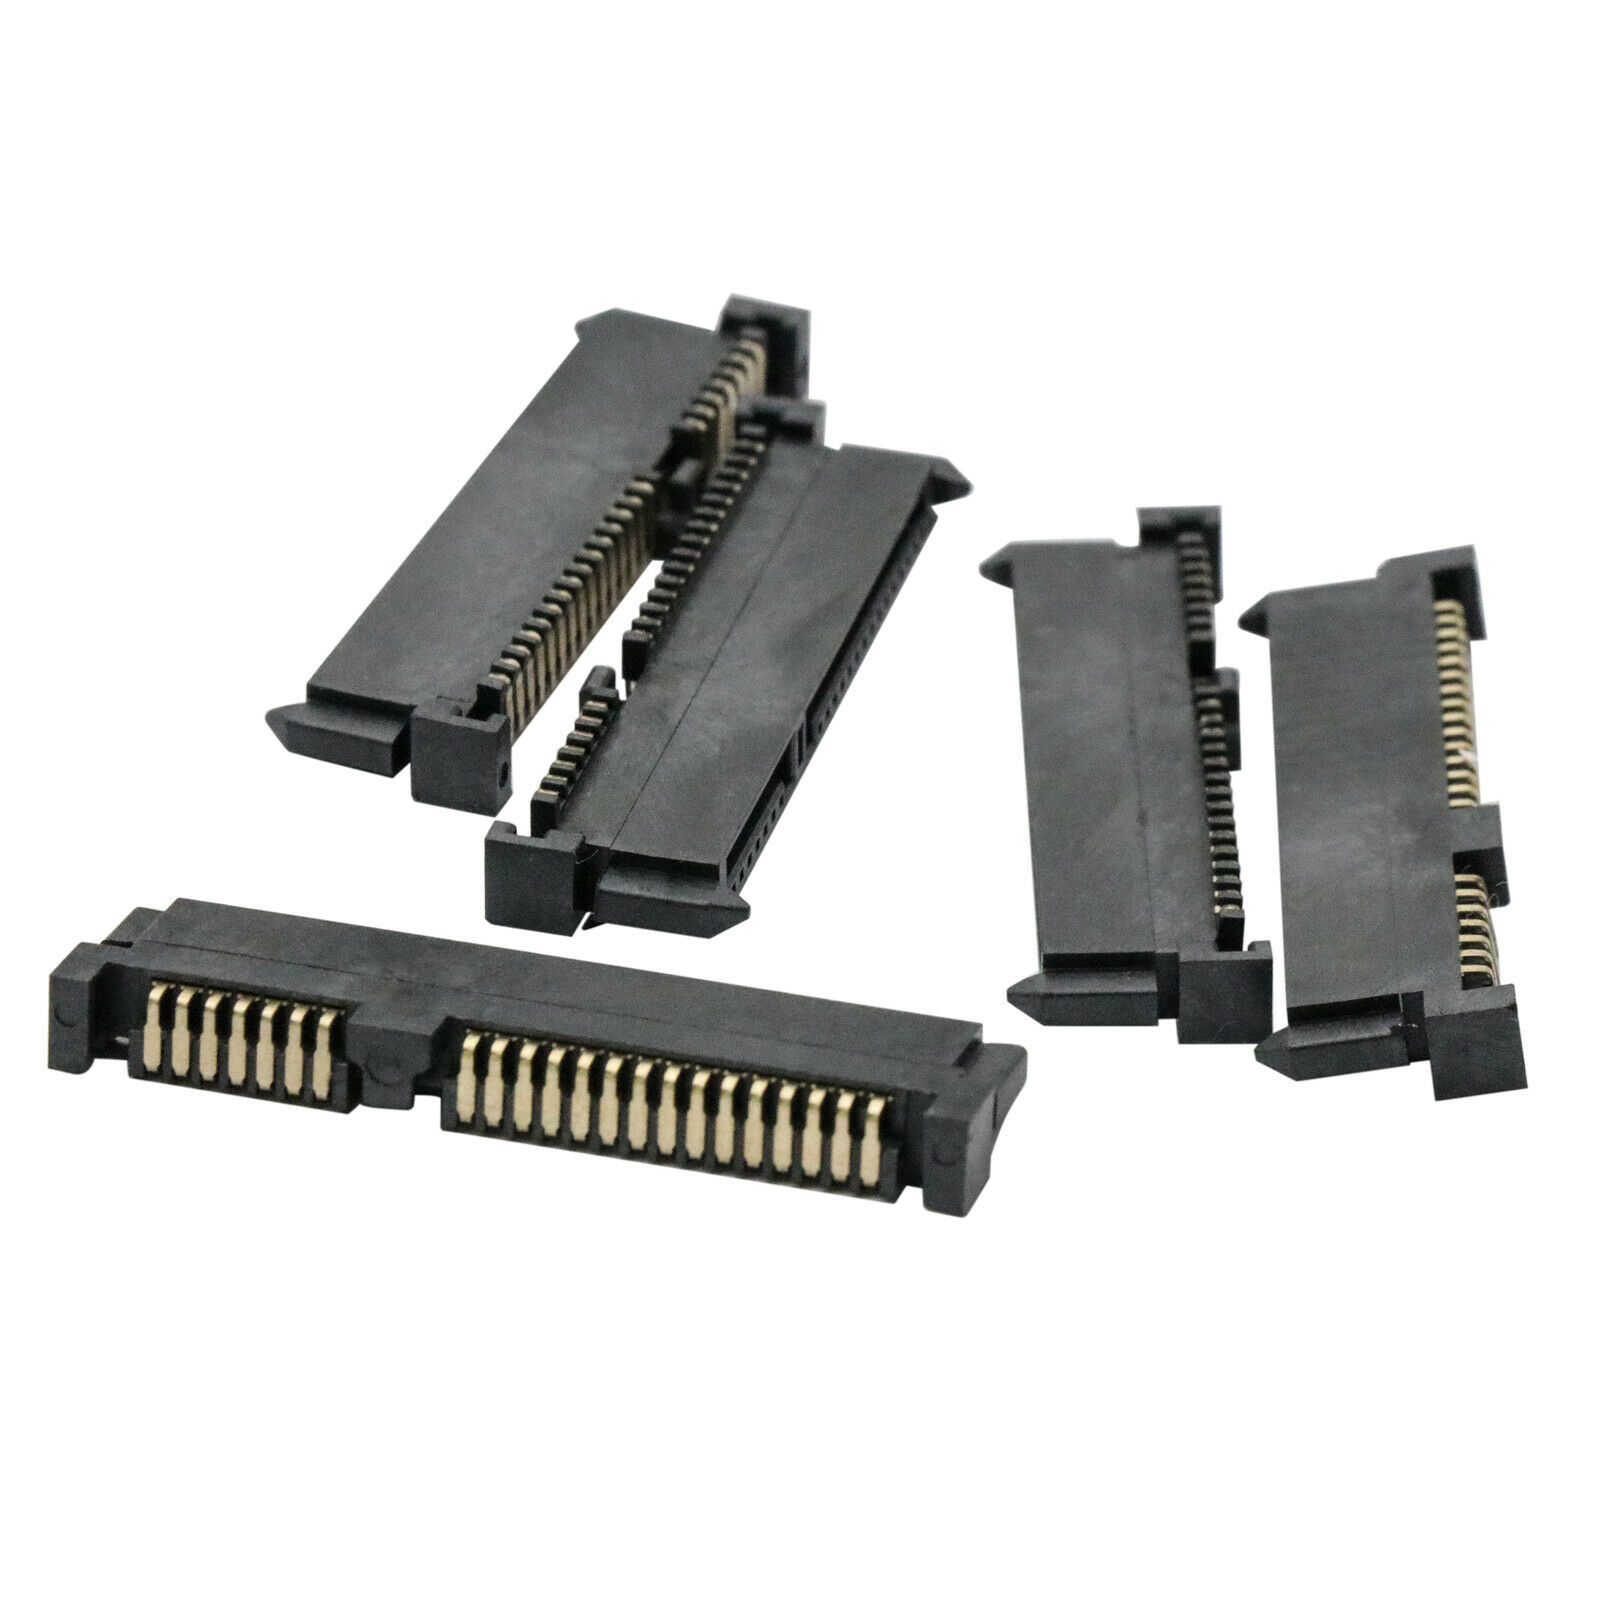 как выглядит 5PCS Hard Drive HDD Connector for HP EliteBook 820 G1 G2 720 725 G1 G2 US фото